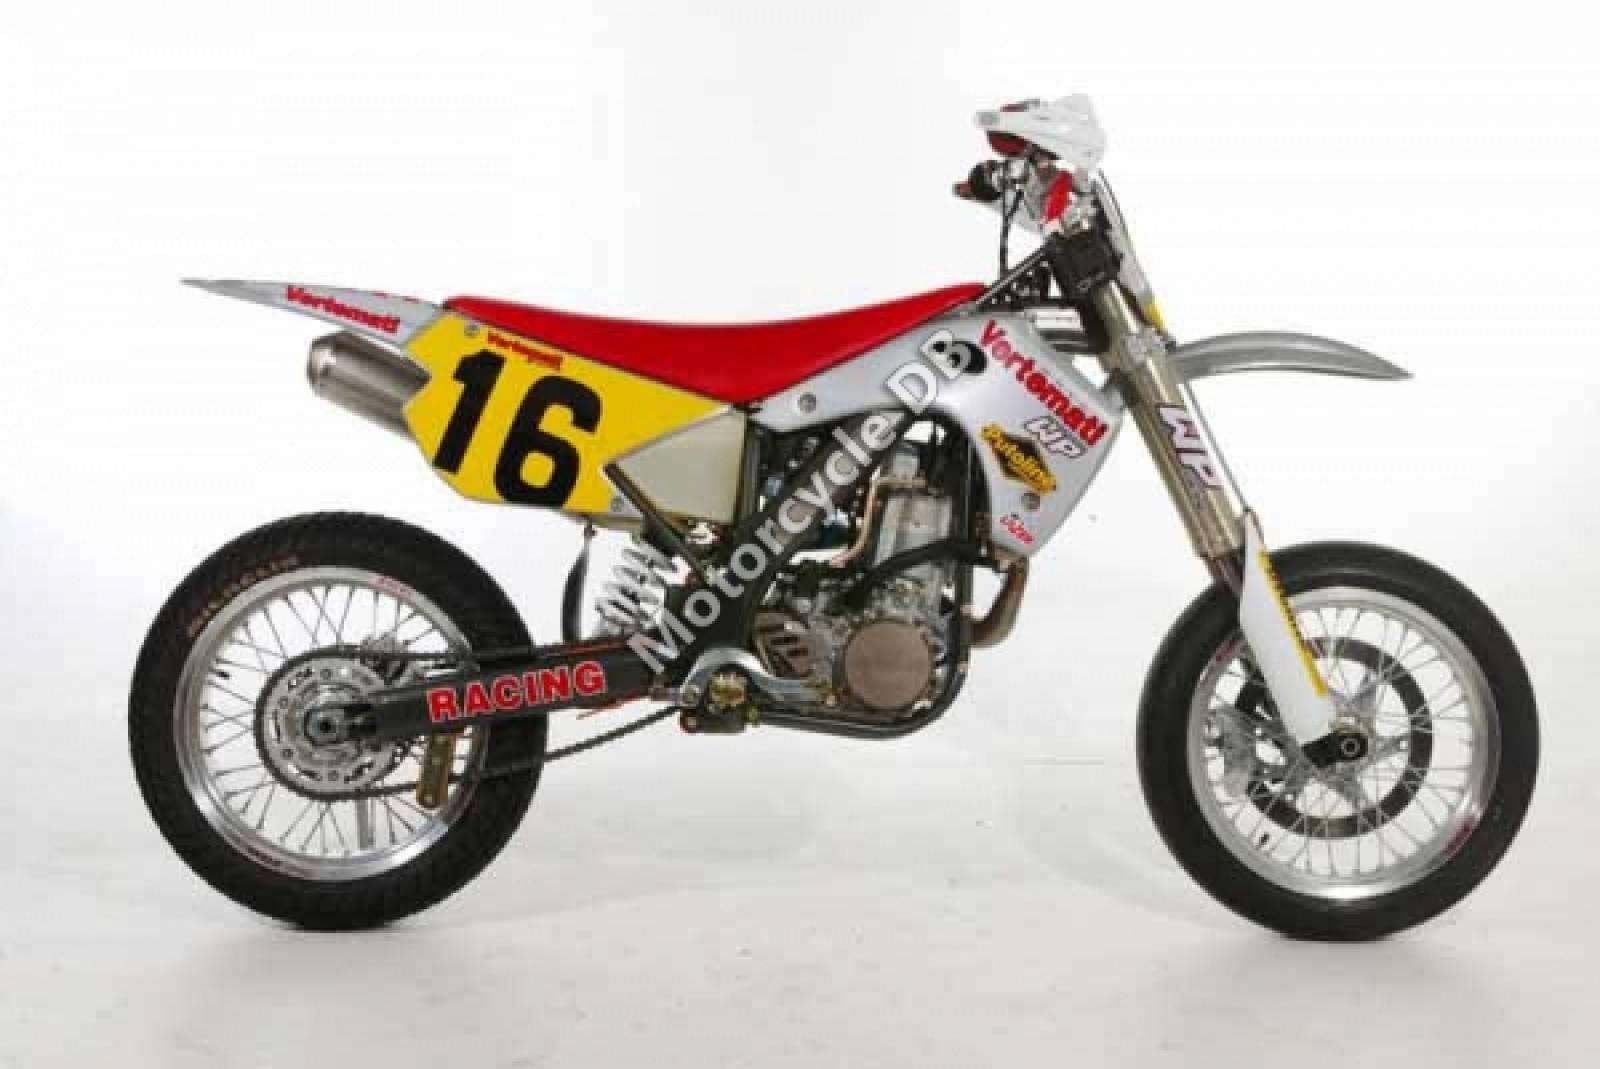 Vertemati E 450 E Enduro wallpapers #141417